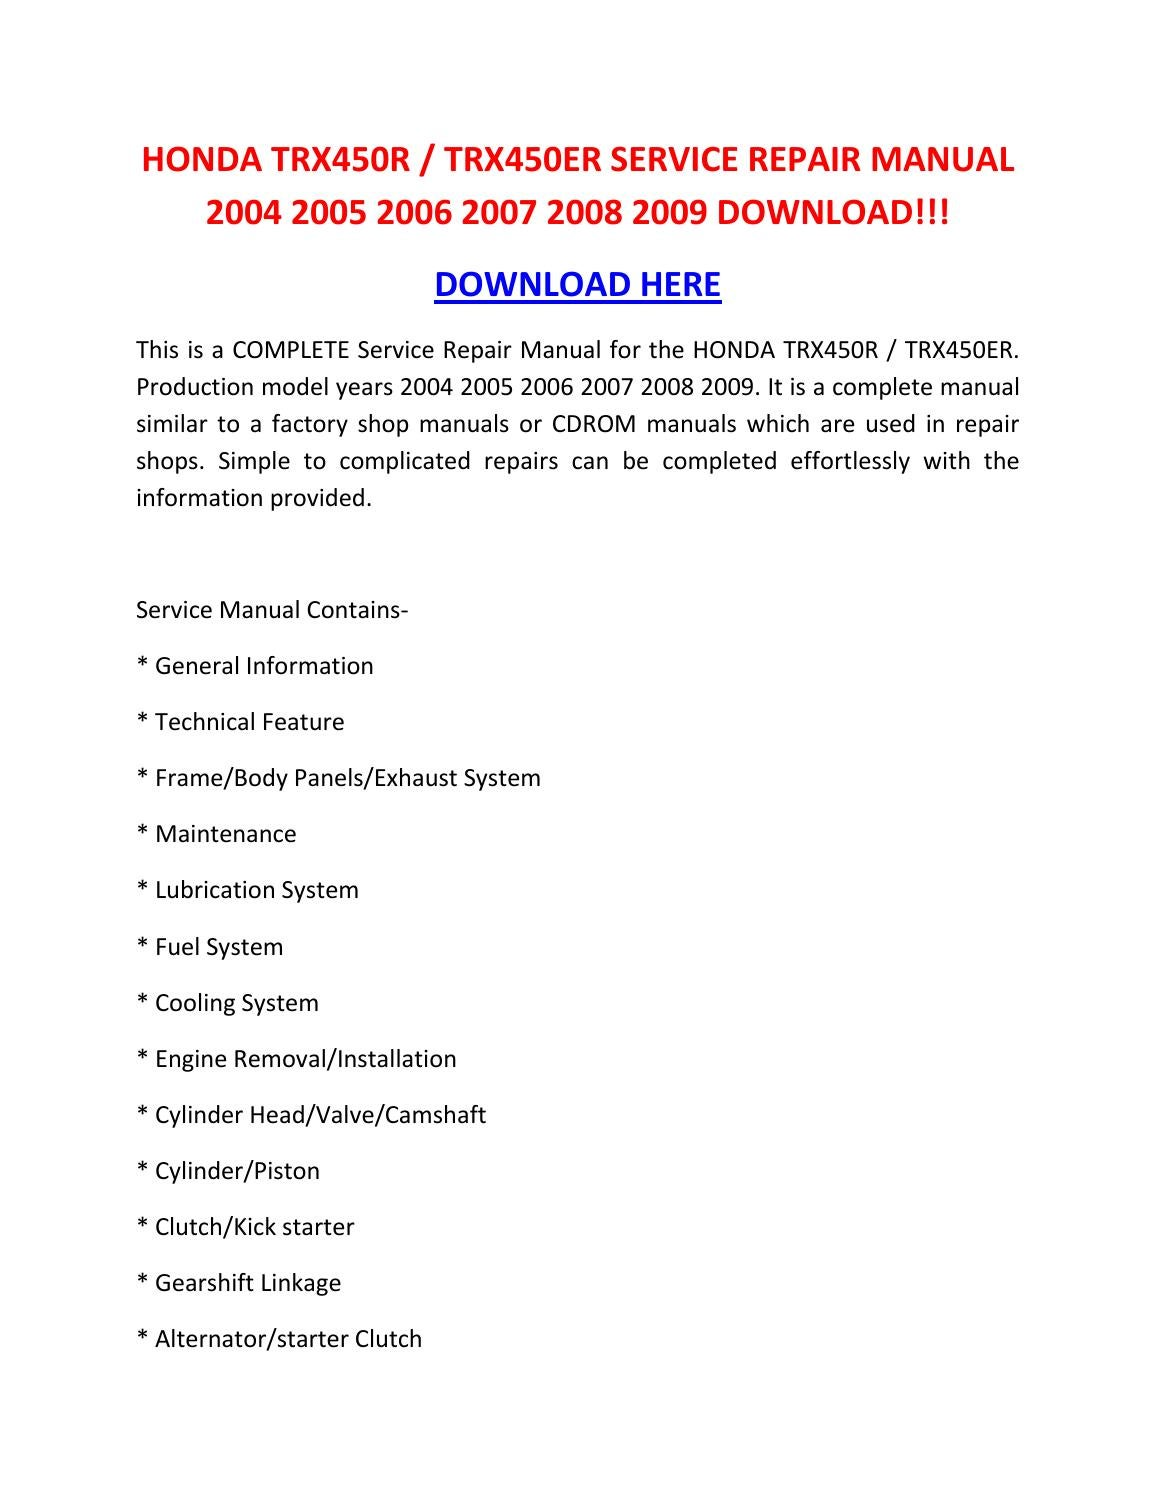 Honda Trx450r Trx450er Service Repair Manual 2004 2005